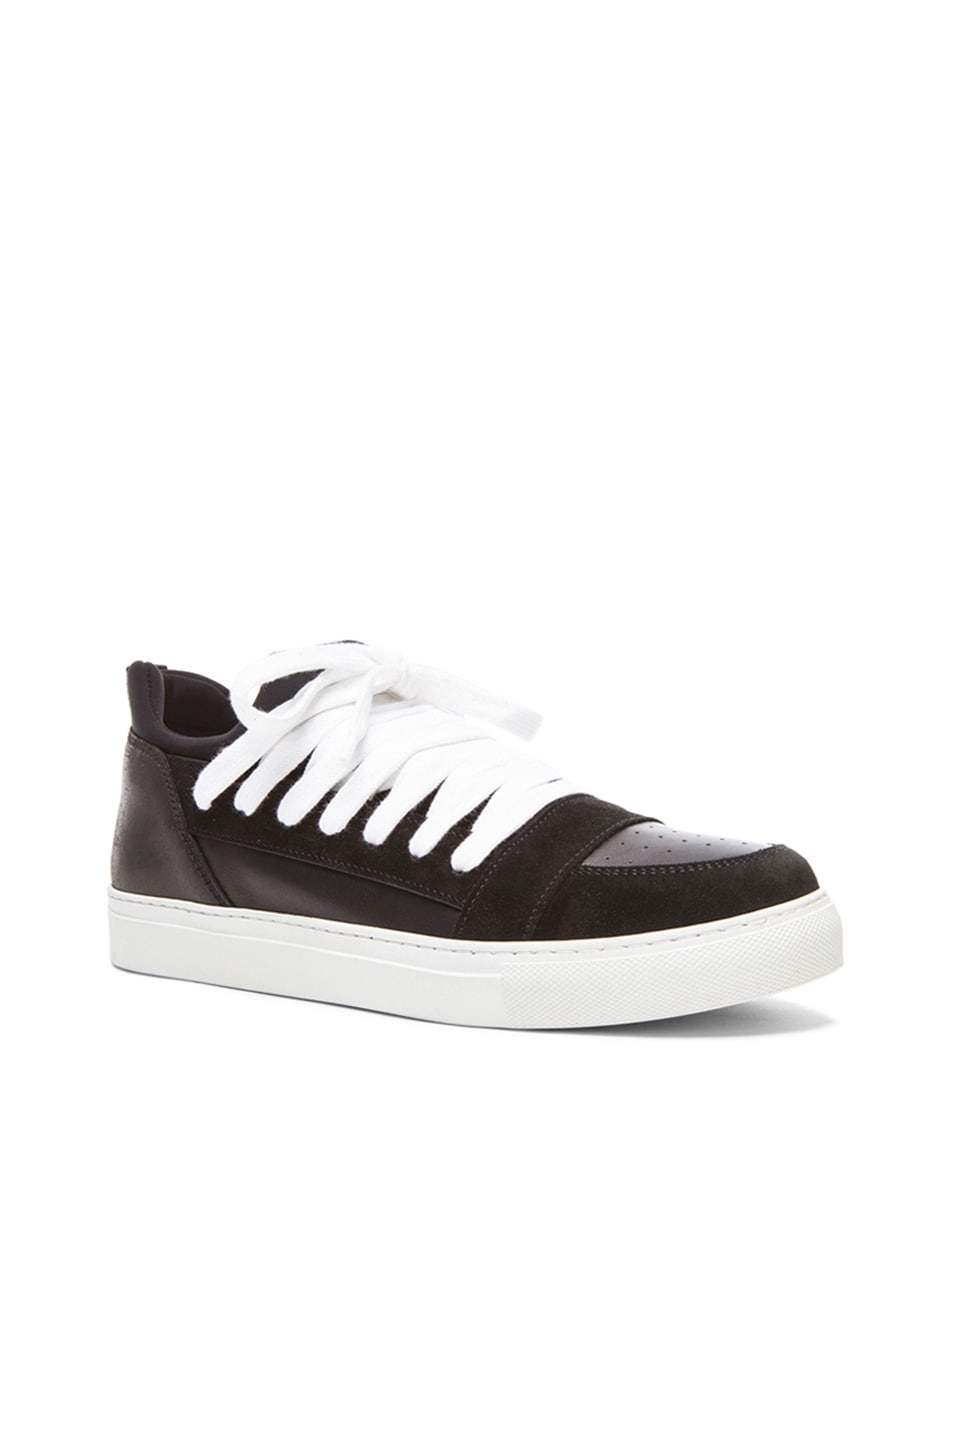 4ffb50c019 Image 1 of Kris Van Assche Low Multi-Lace Leather Sneakers in Black